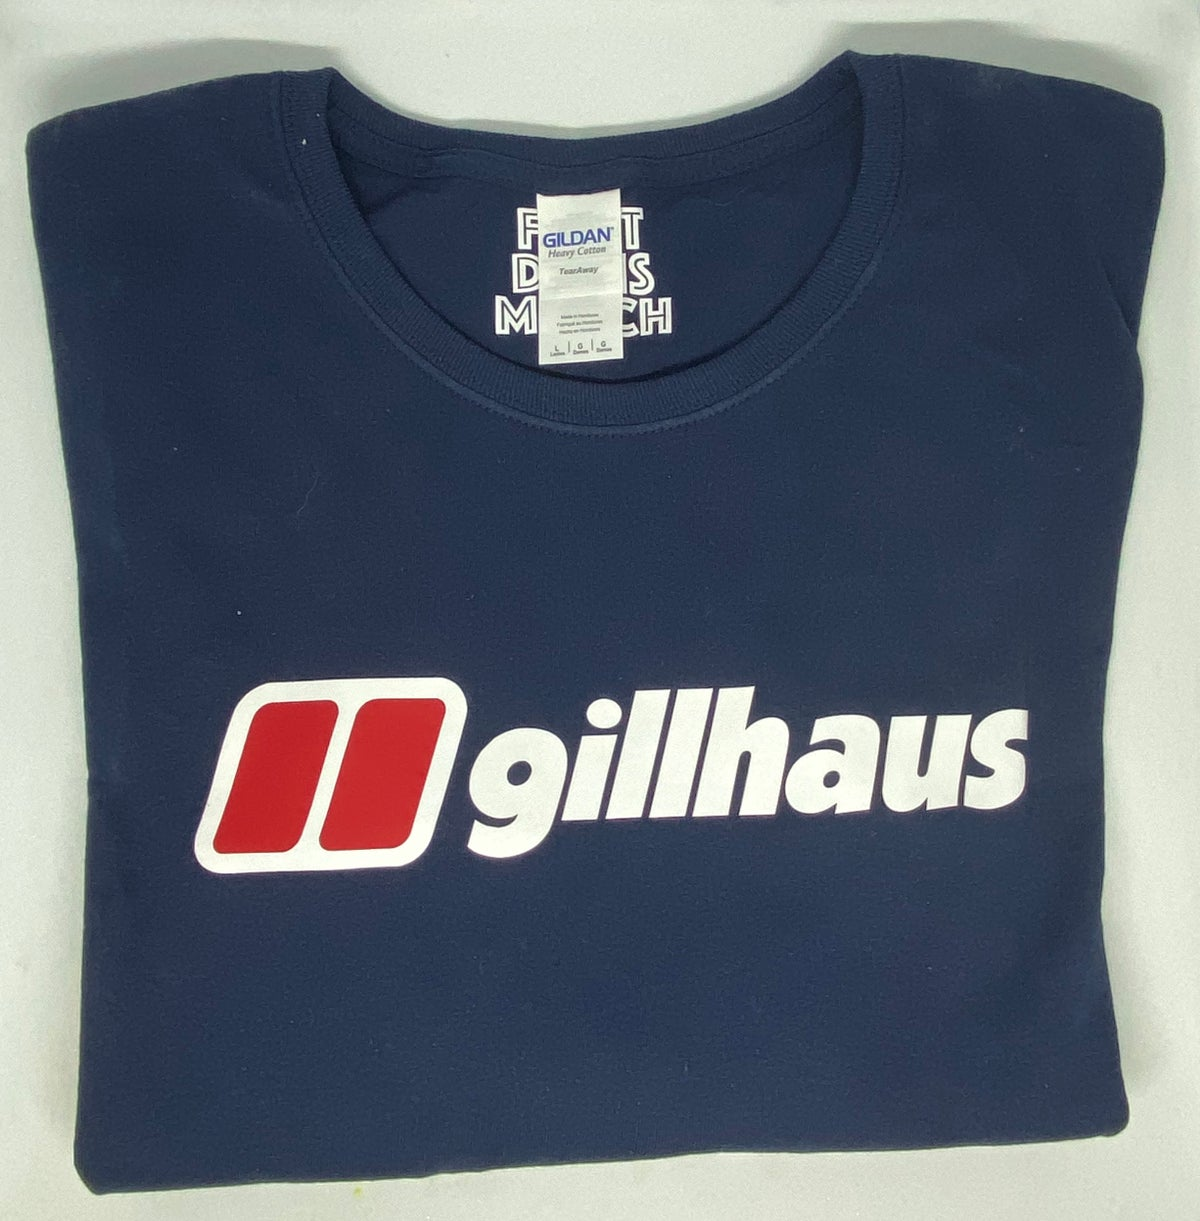 Image of Ladies Gillhaus tee